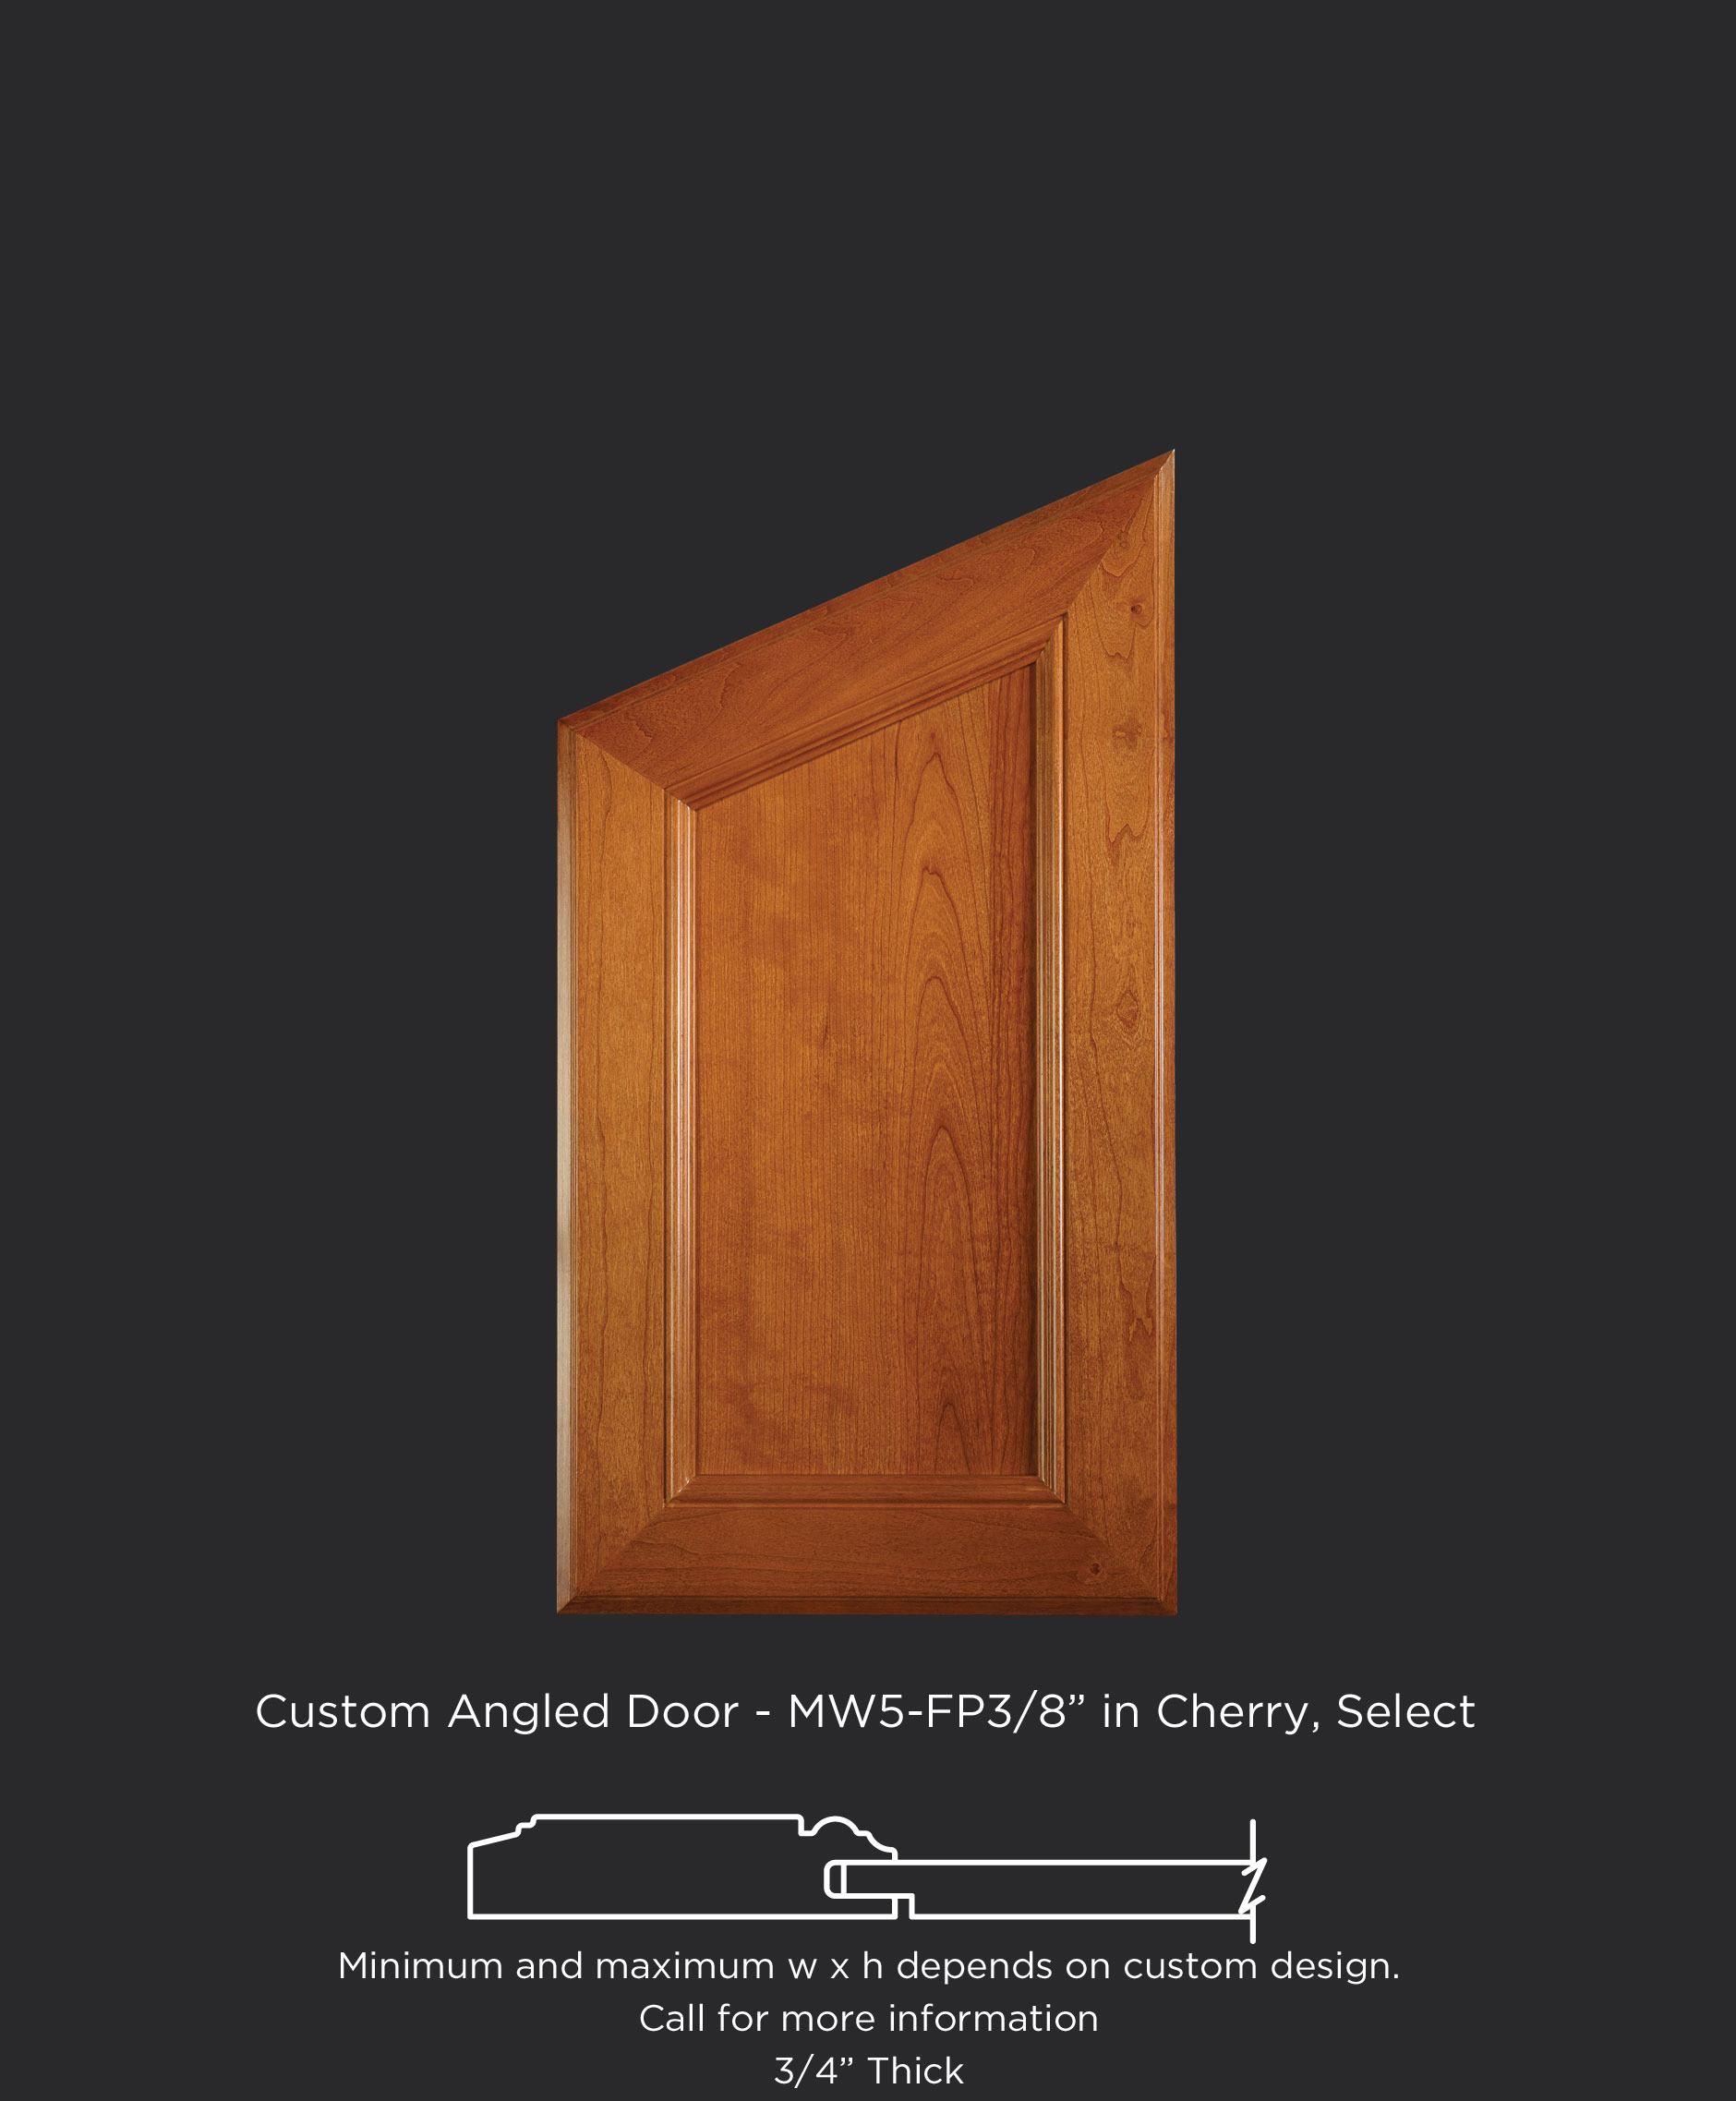 Cabinet Doors and More Awesome Radius Cabinet Doors and Specialty Taylorcraft Cabinet